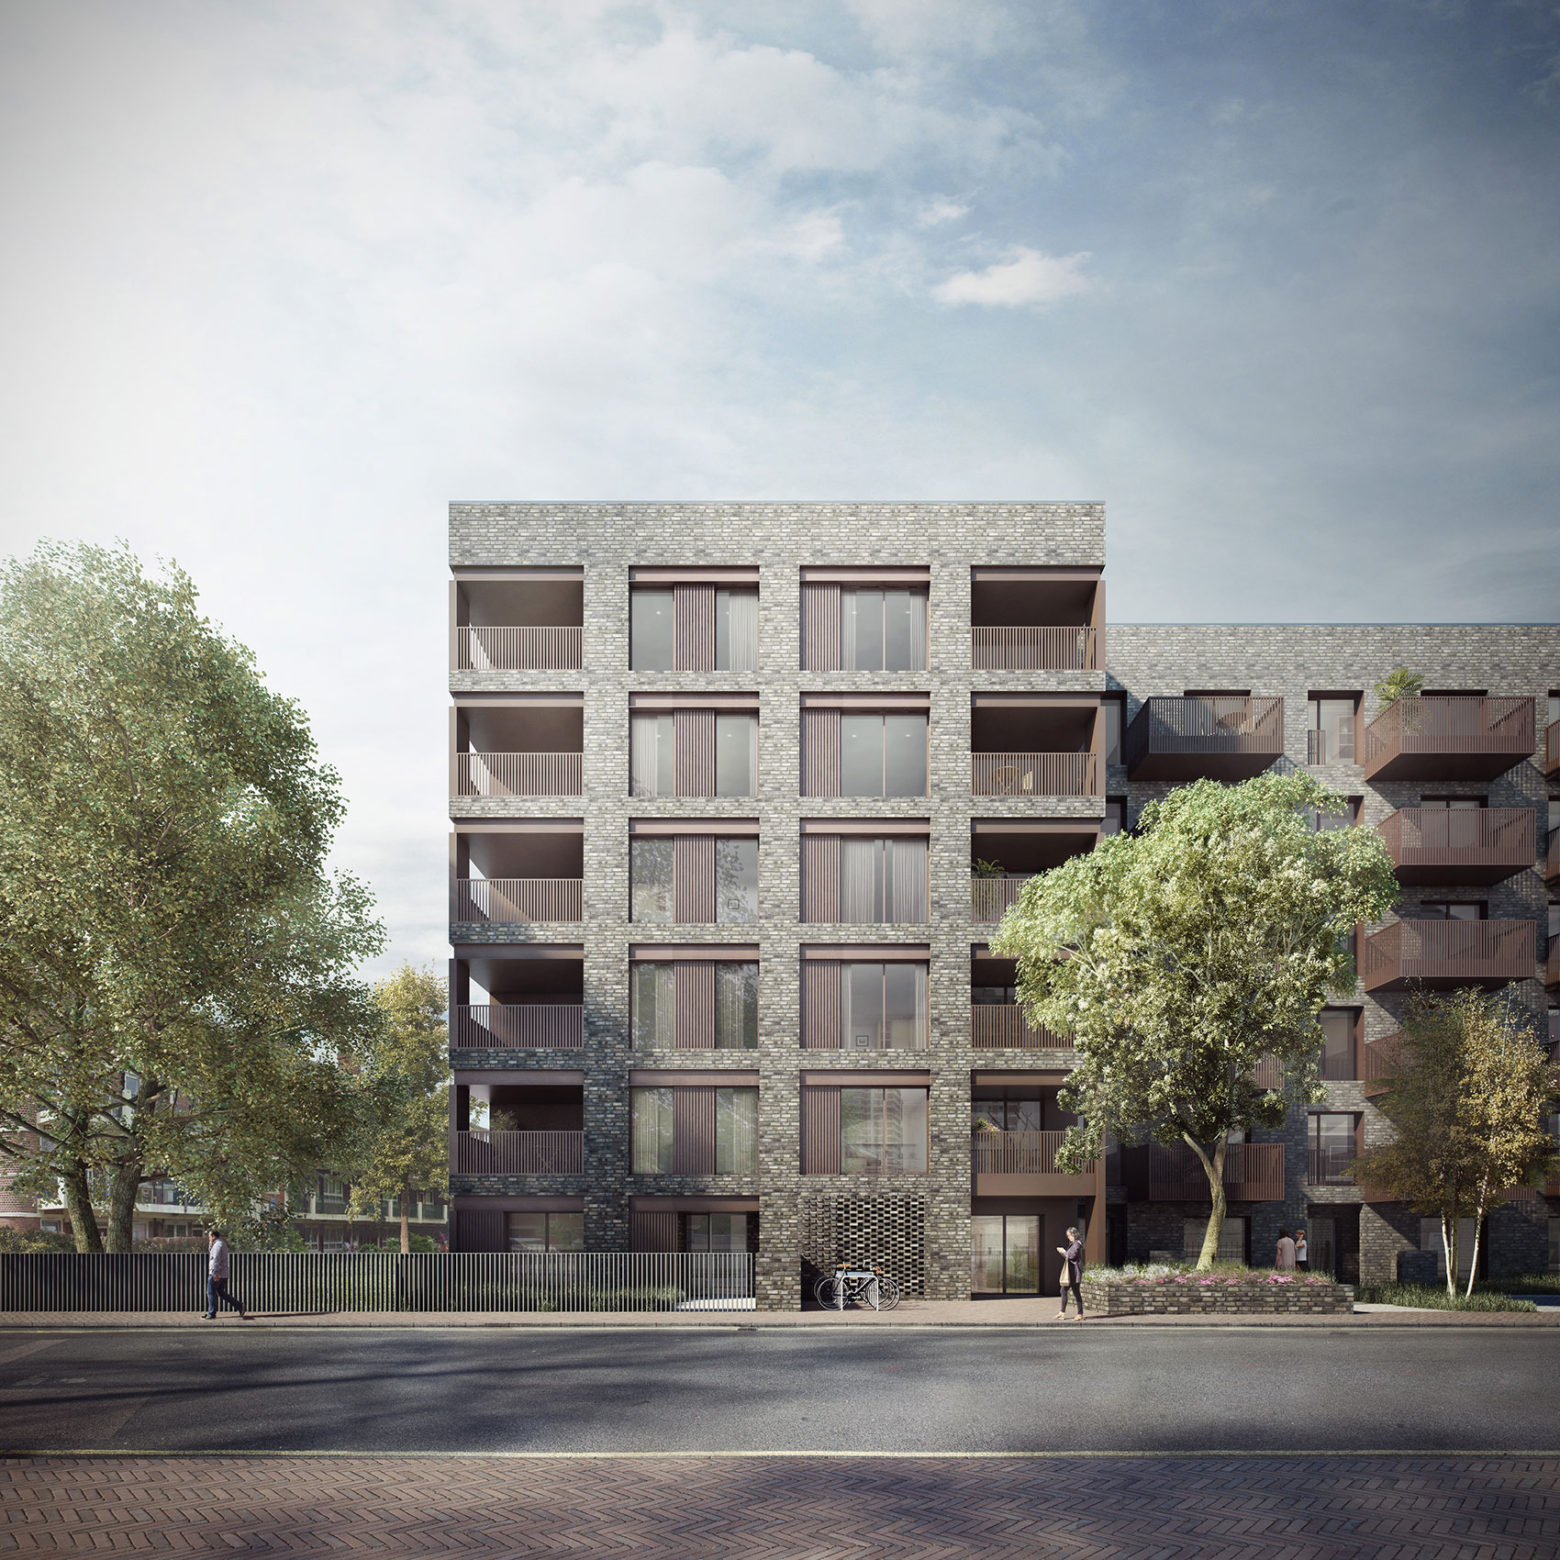 Planning consent for new homes in Southwark